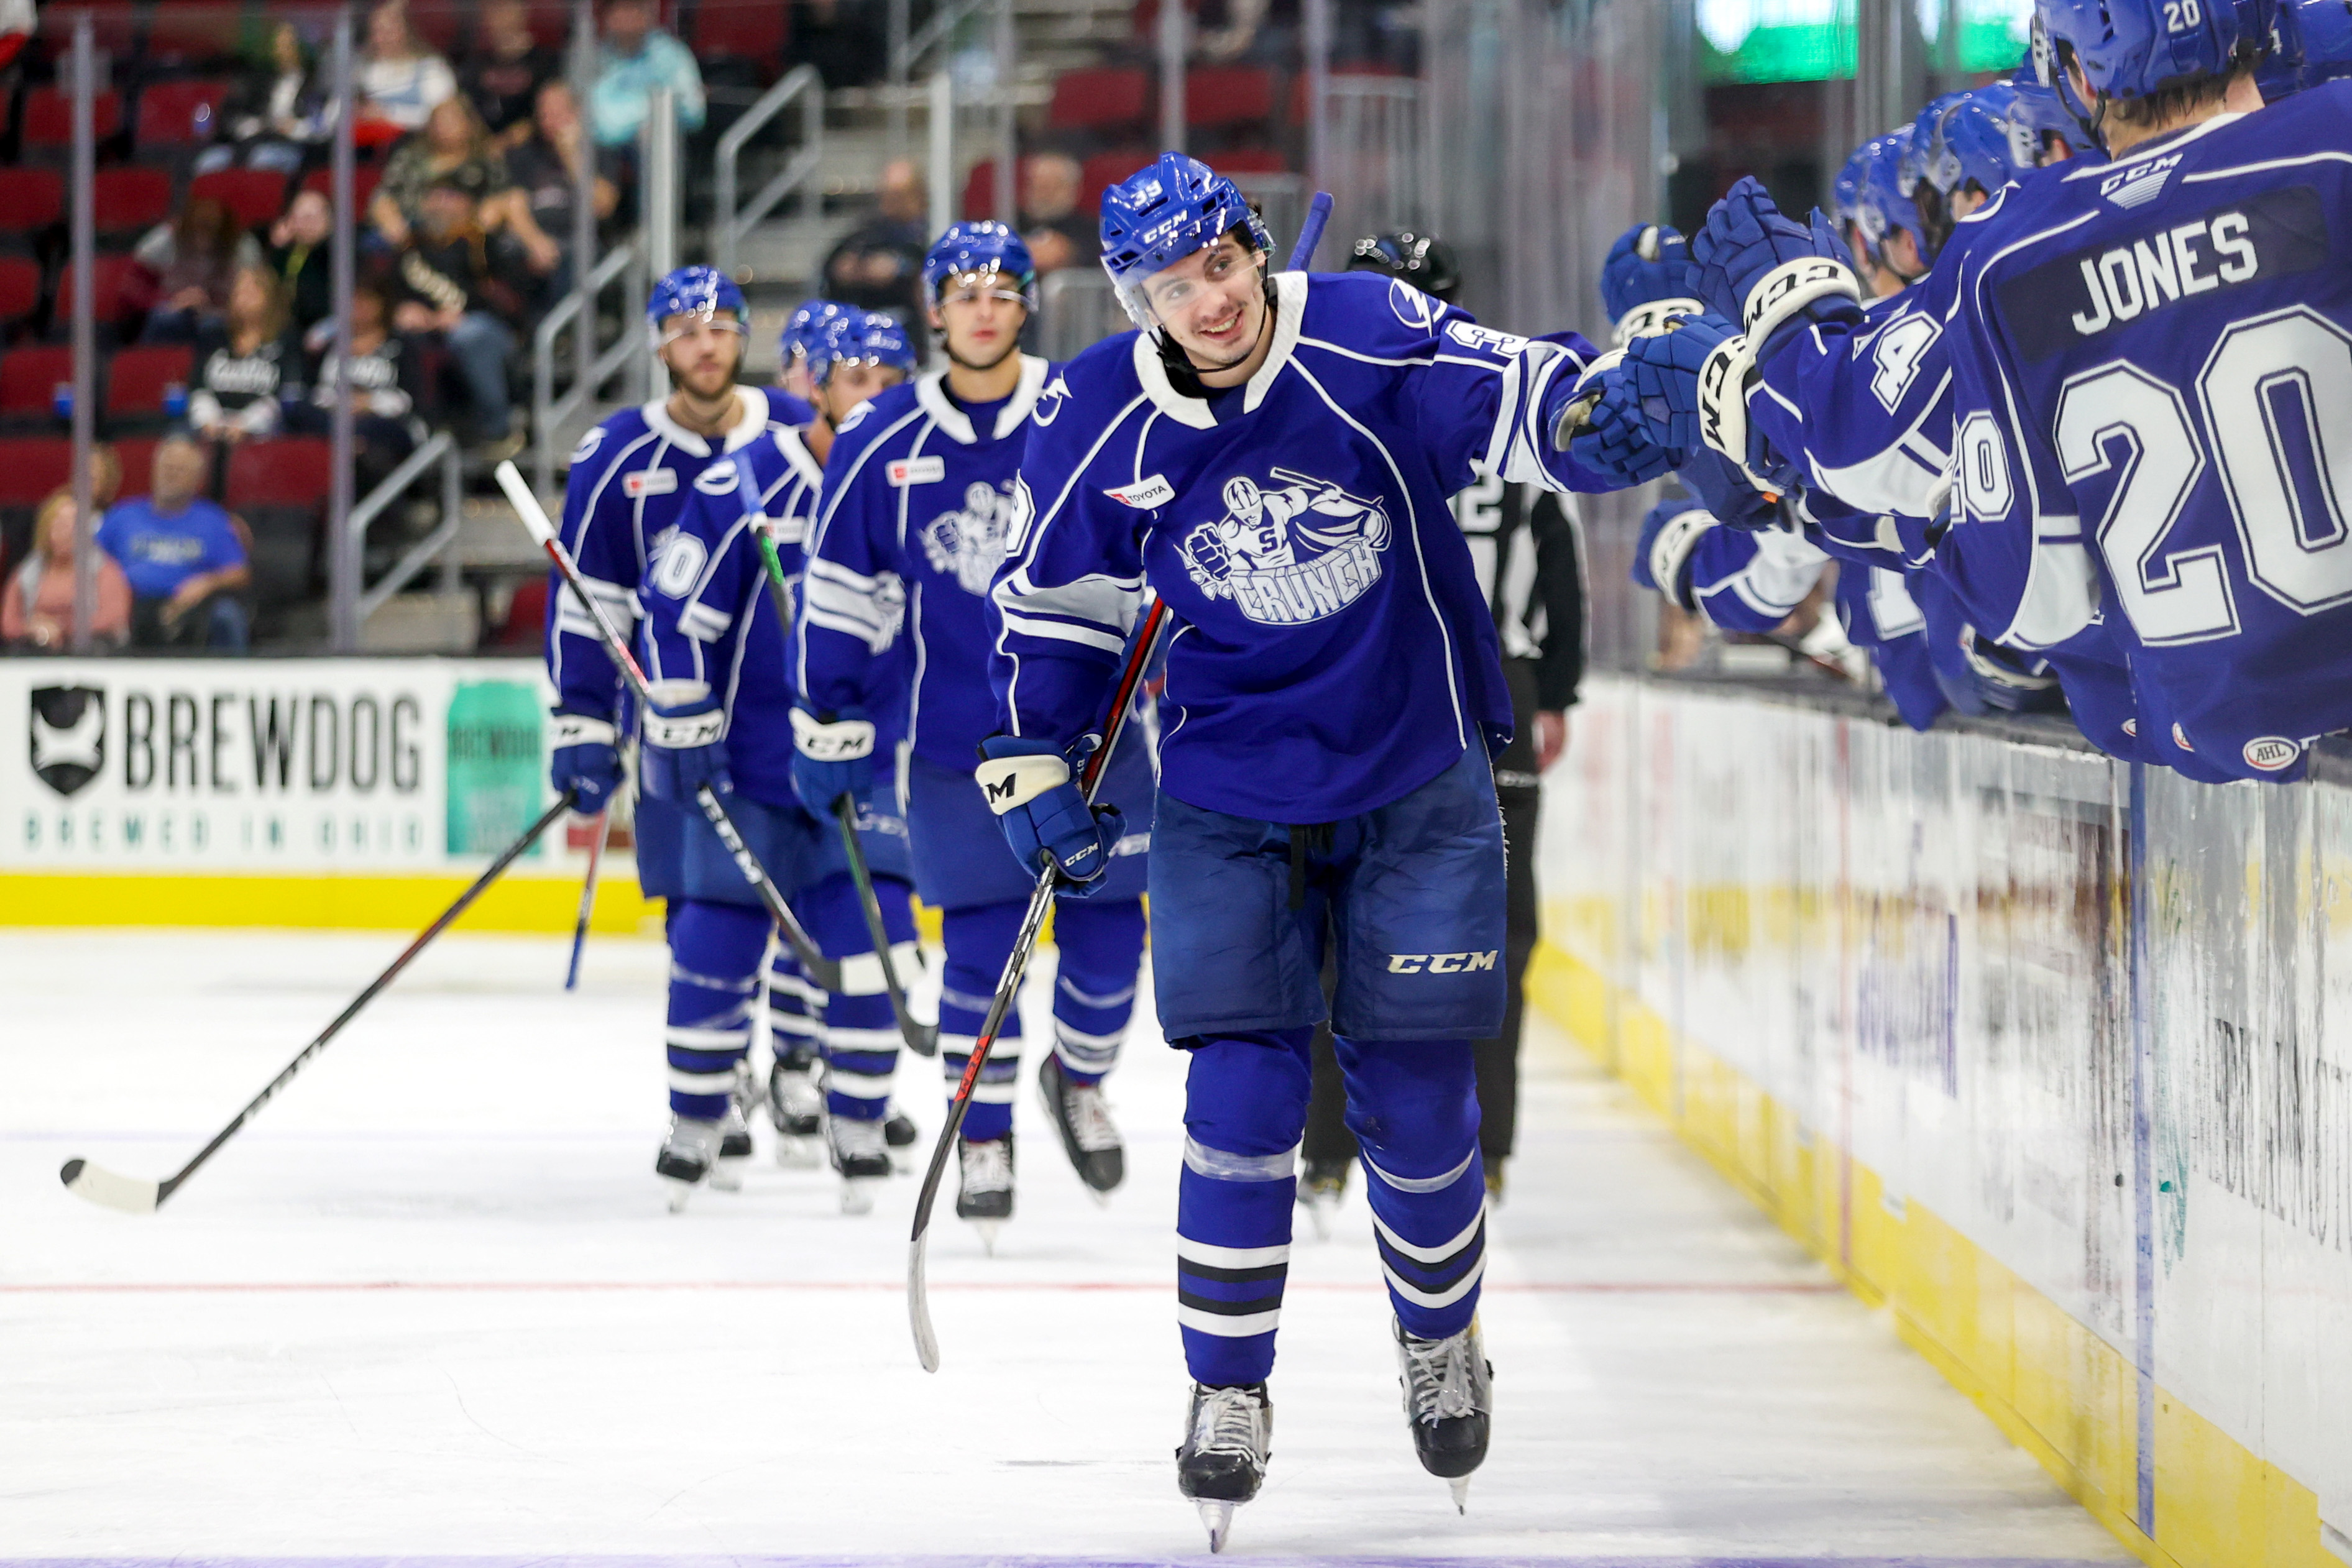 AHL: OCT 15 Syracuse Crunch at Cleveland Monsters